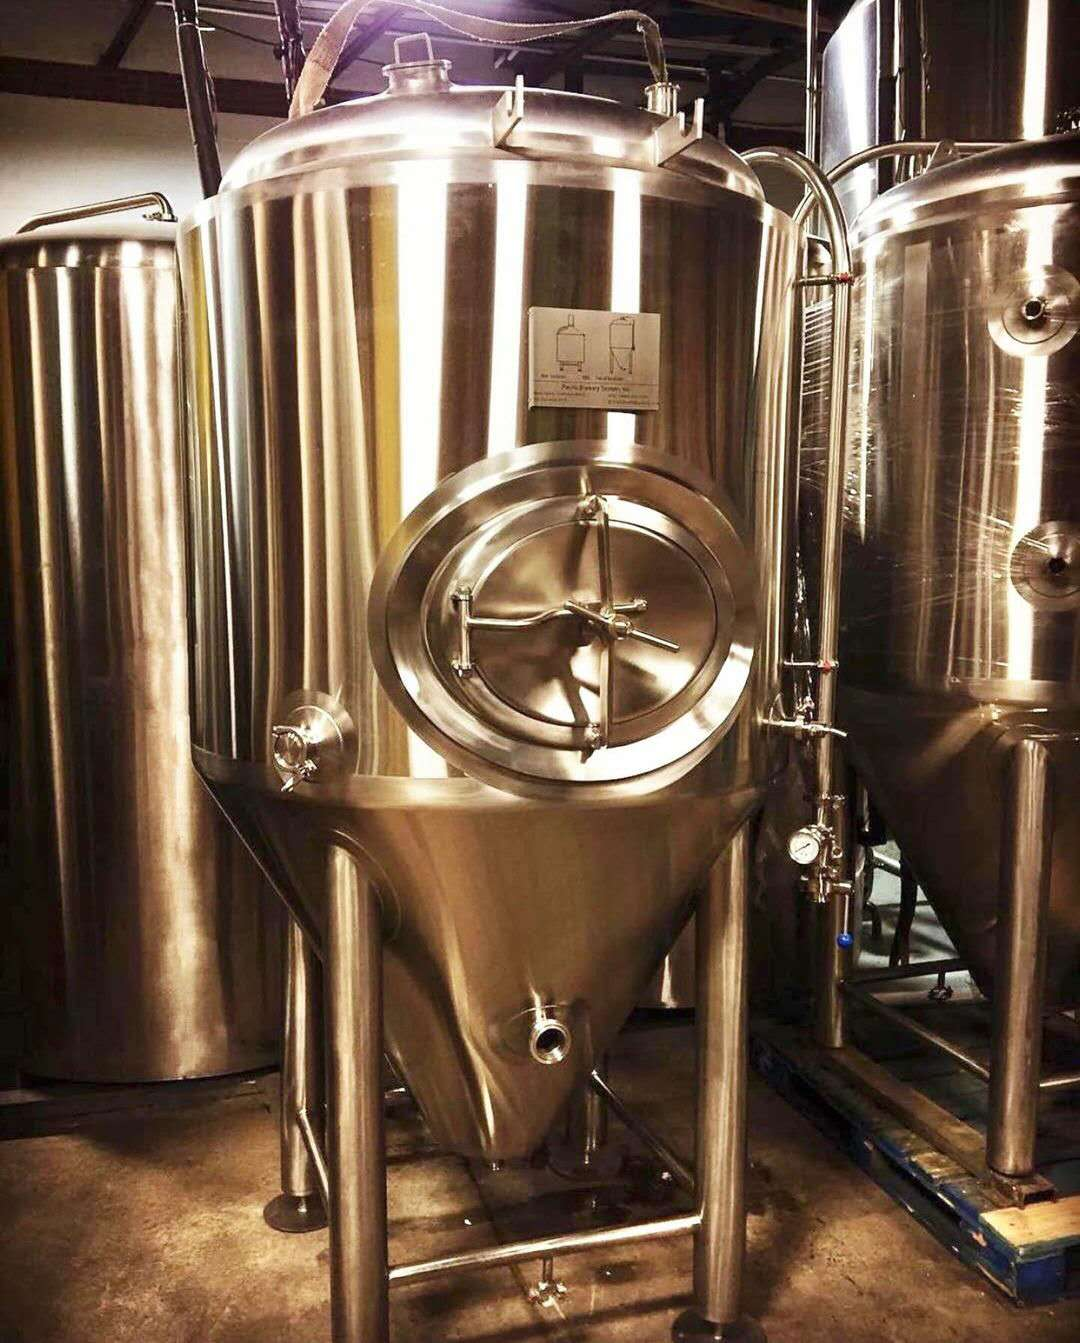 Stainless steel fermentation pail and conical beer fermentor tank from WEMAC factory